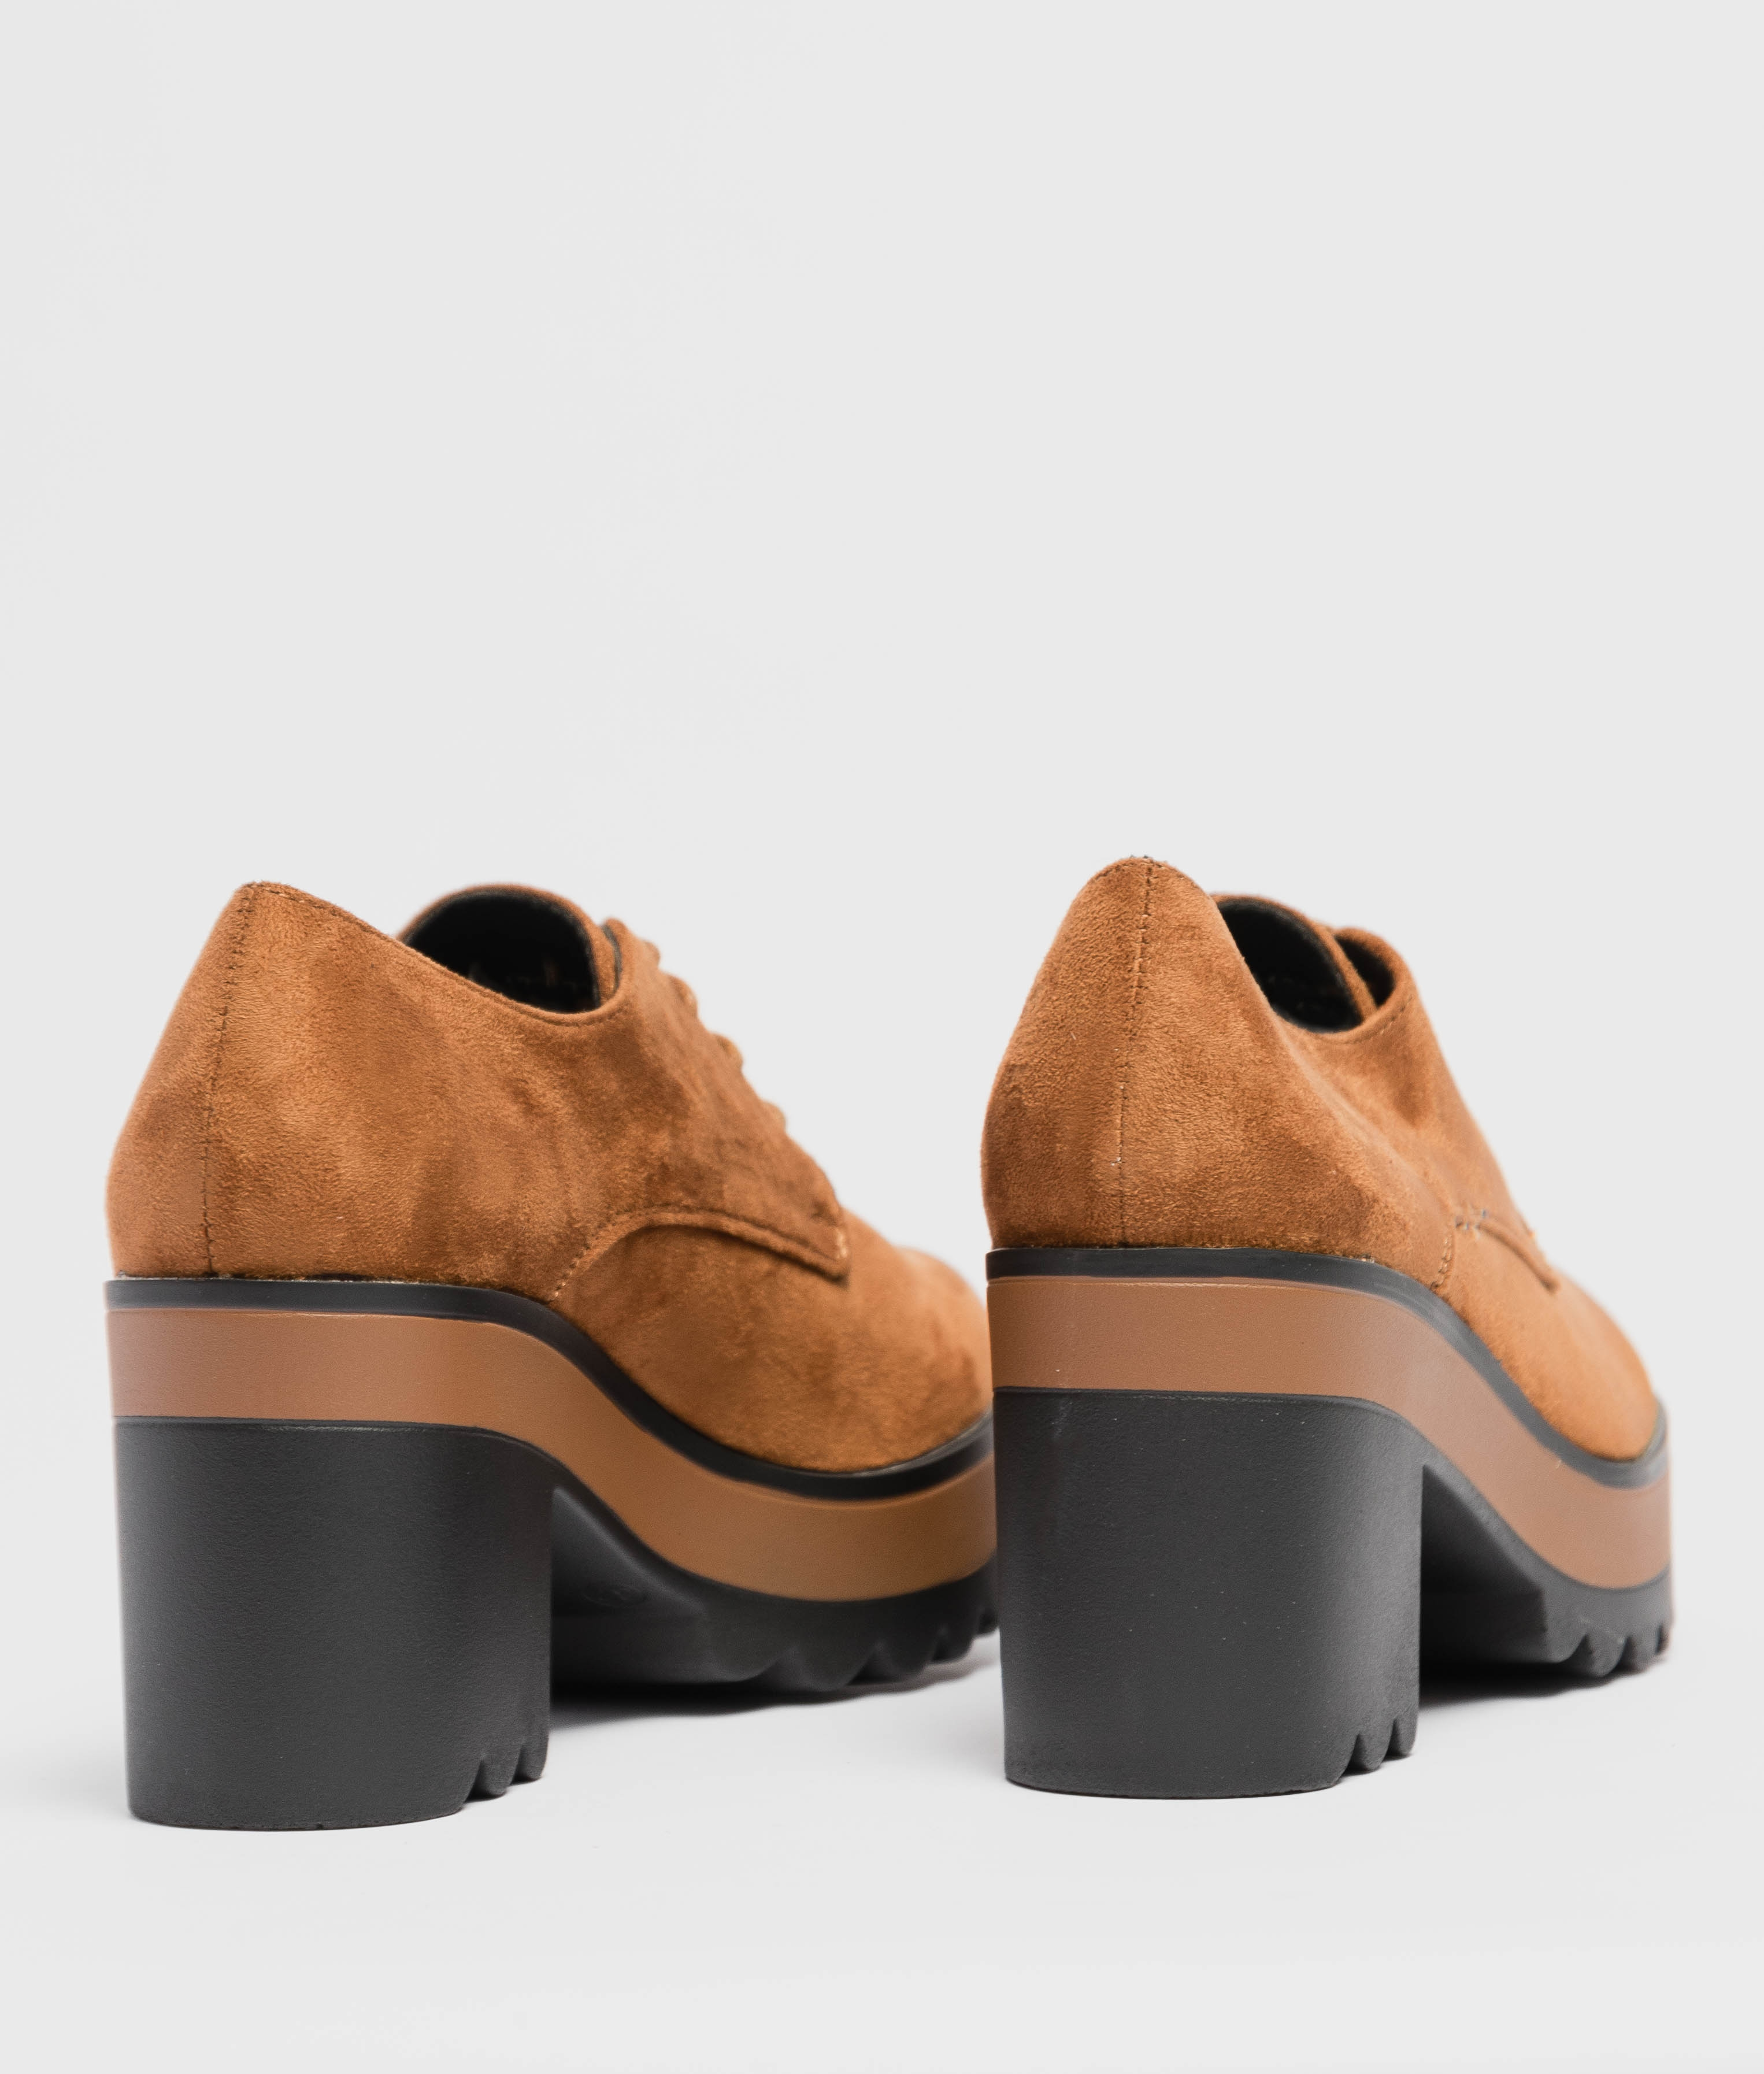 LAMBER HIGH HEEL - CAMEL